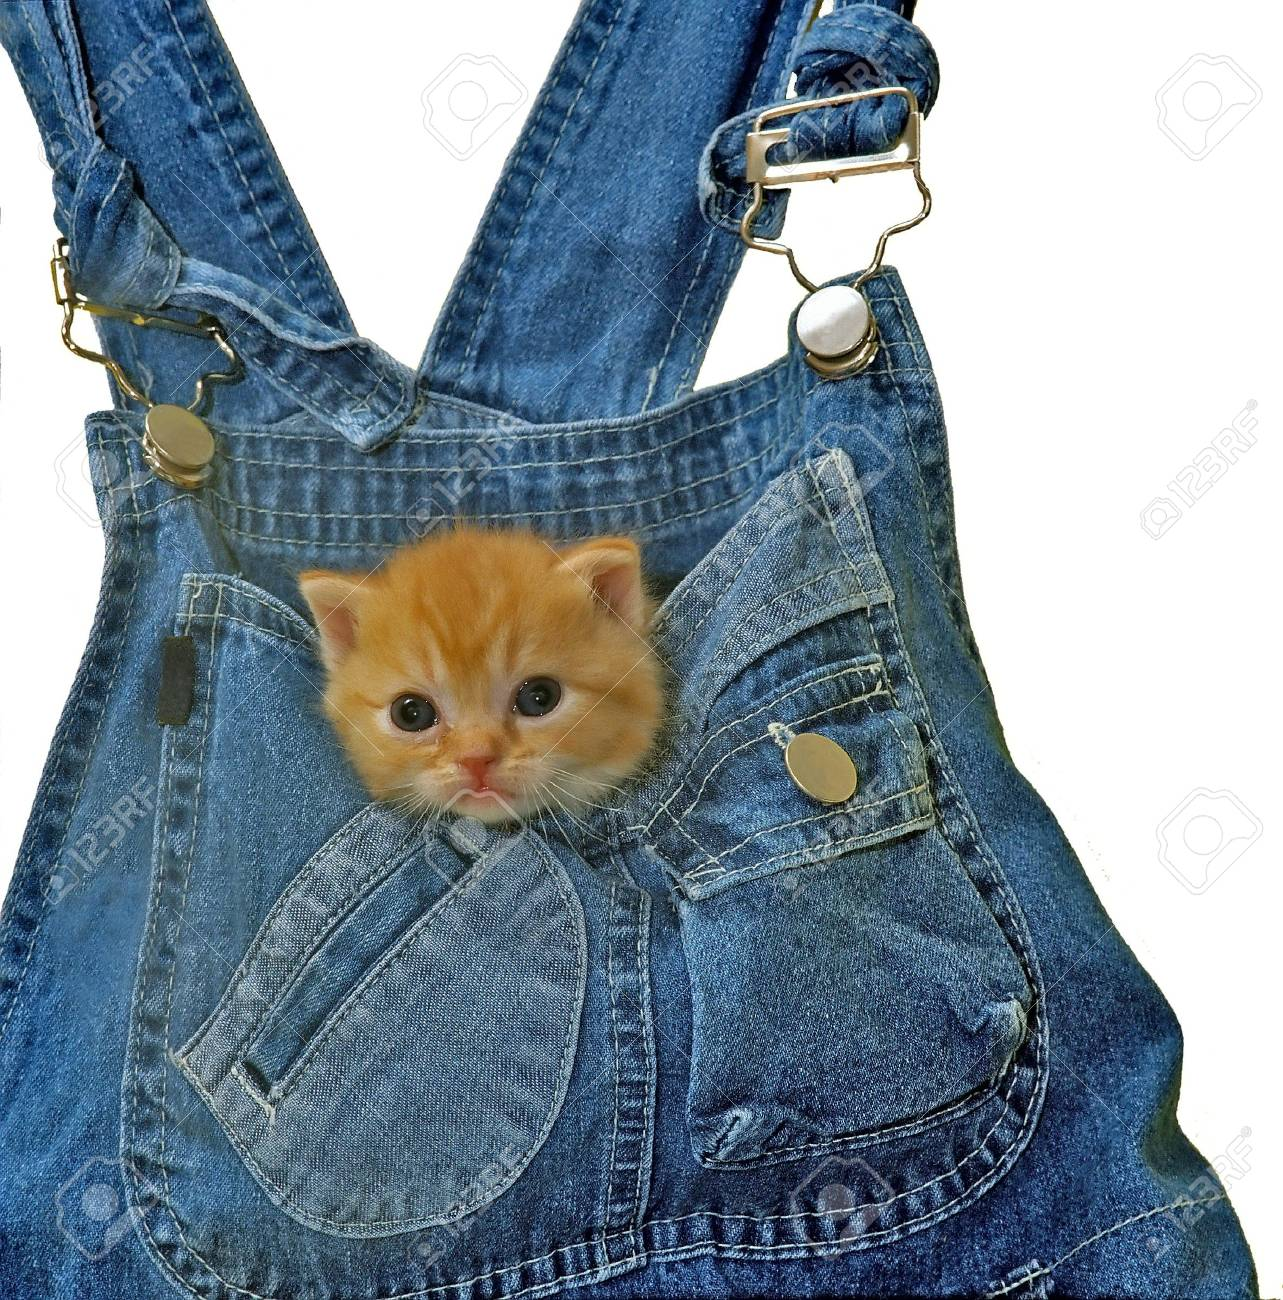 young kitten staring from a pocket - 3608686